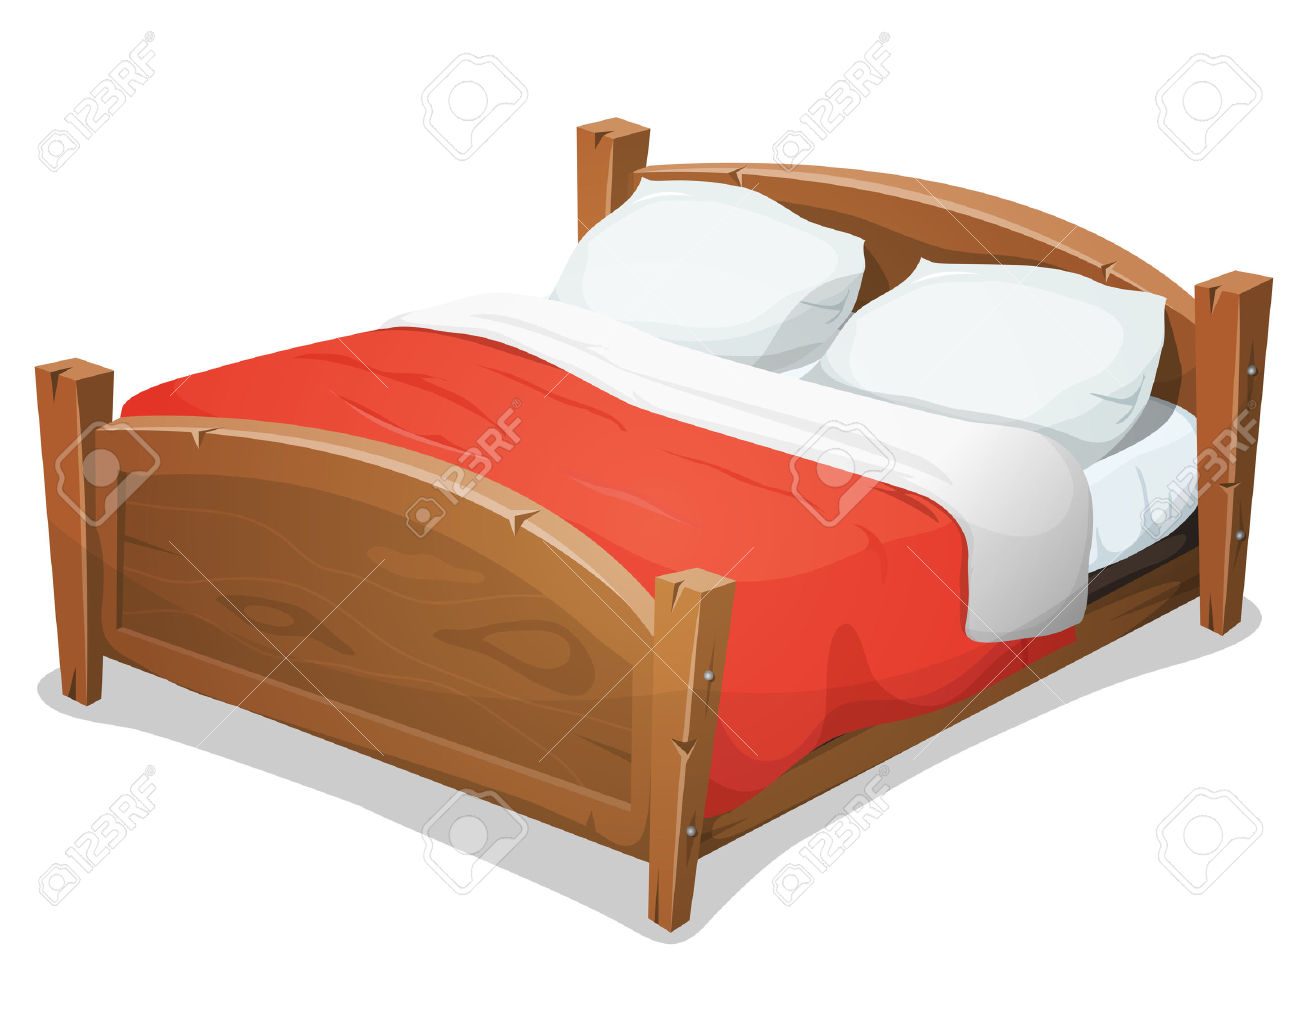 Doppelbett Clipart Big Bed Clipart Free Download Best Big Bed Clipart On